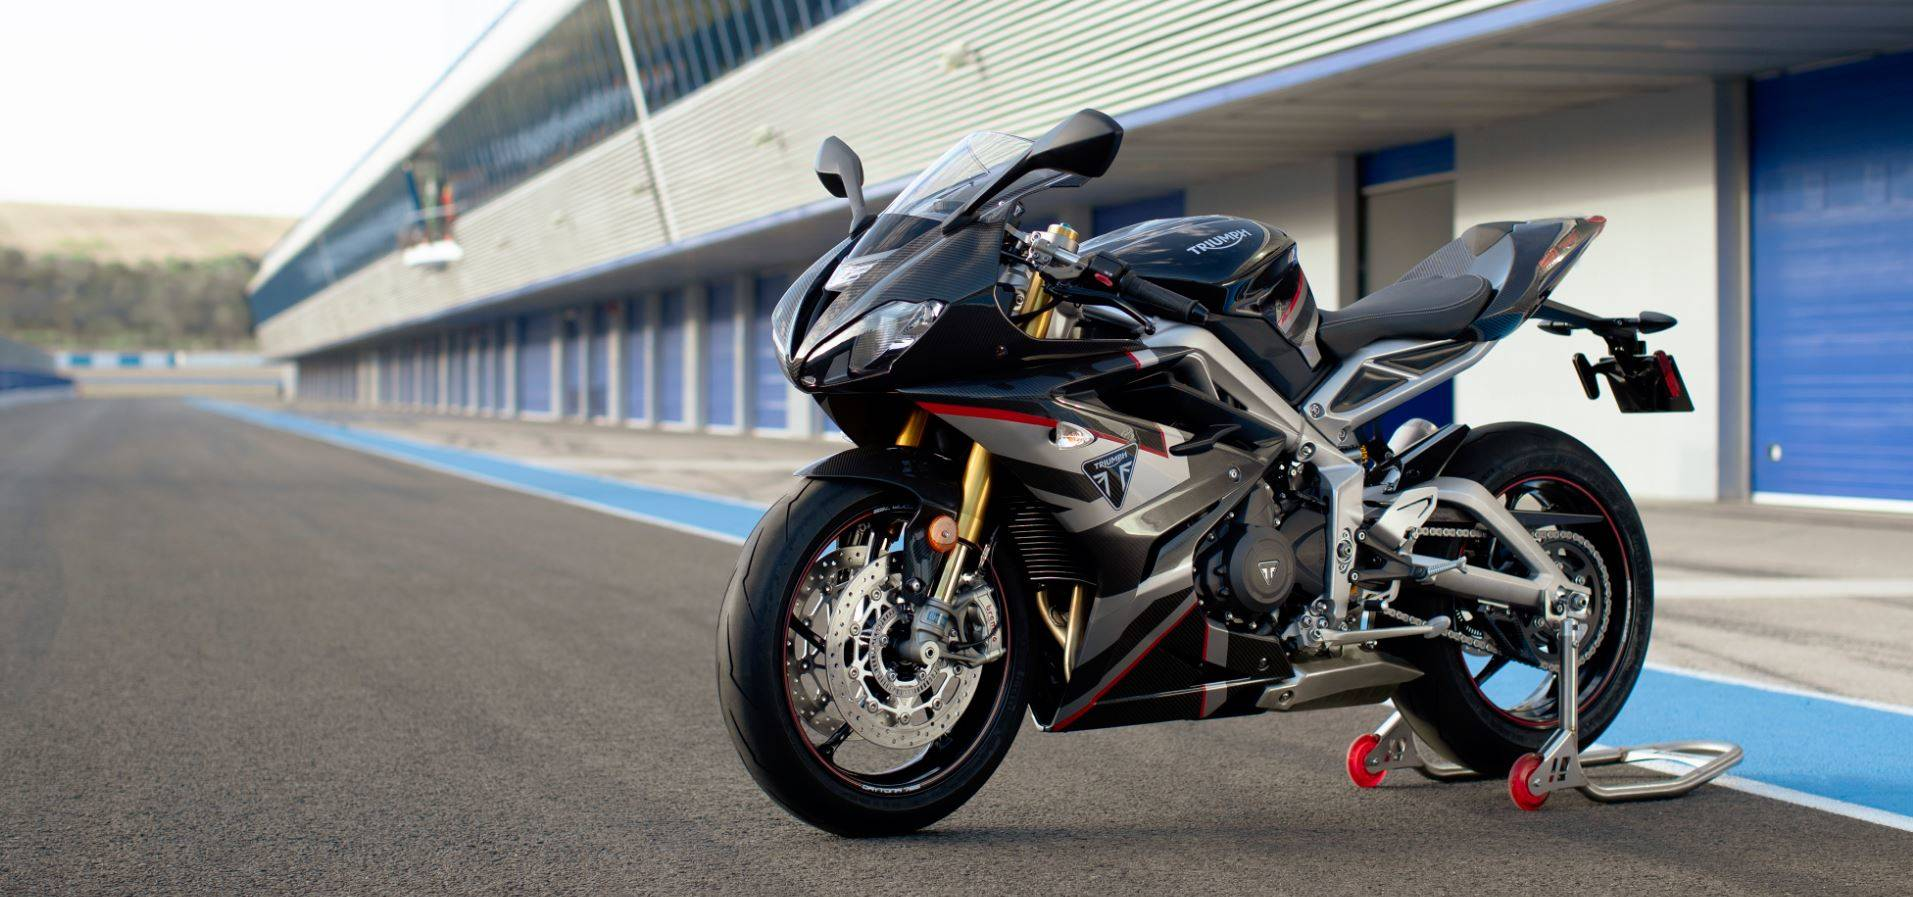 2020 Triumph Daytona Moto2TM 765 Limited Edition in Mahwah, New Jersey - Photo 1